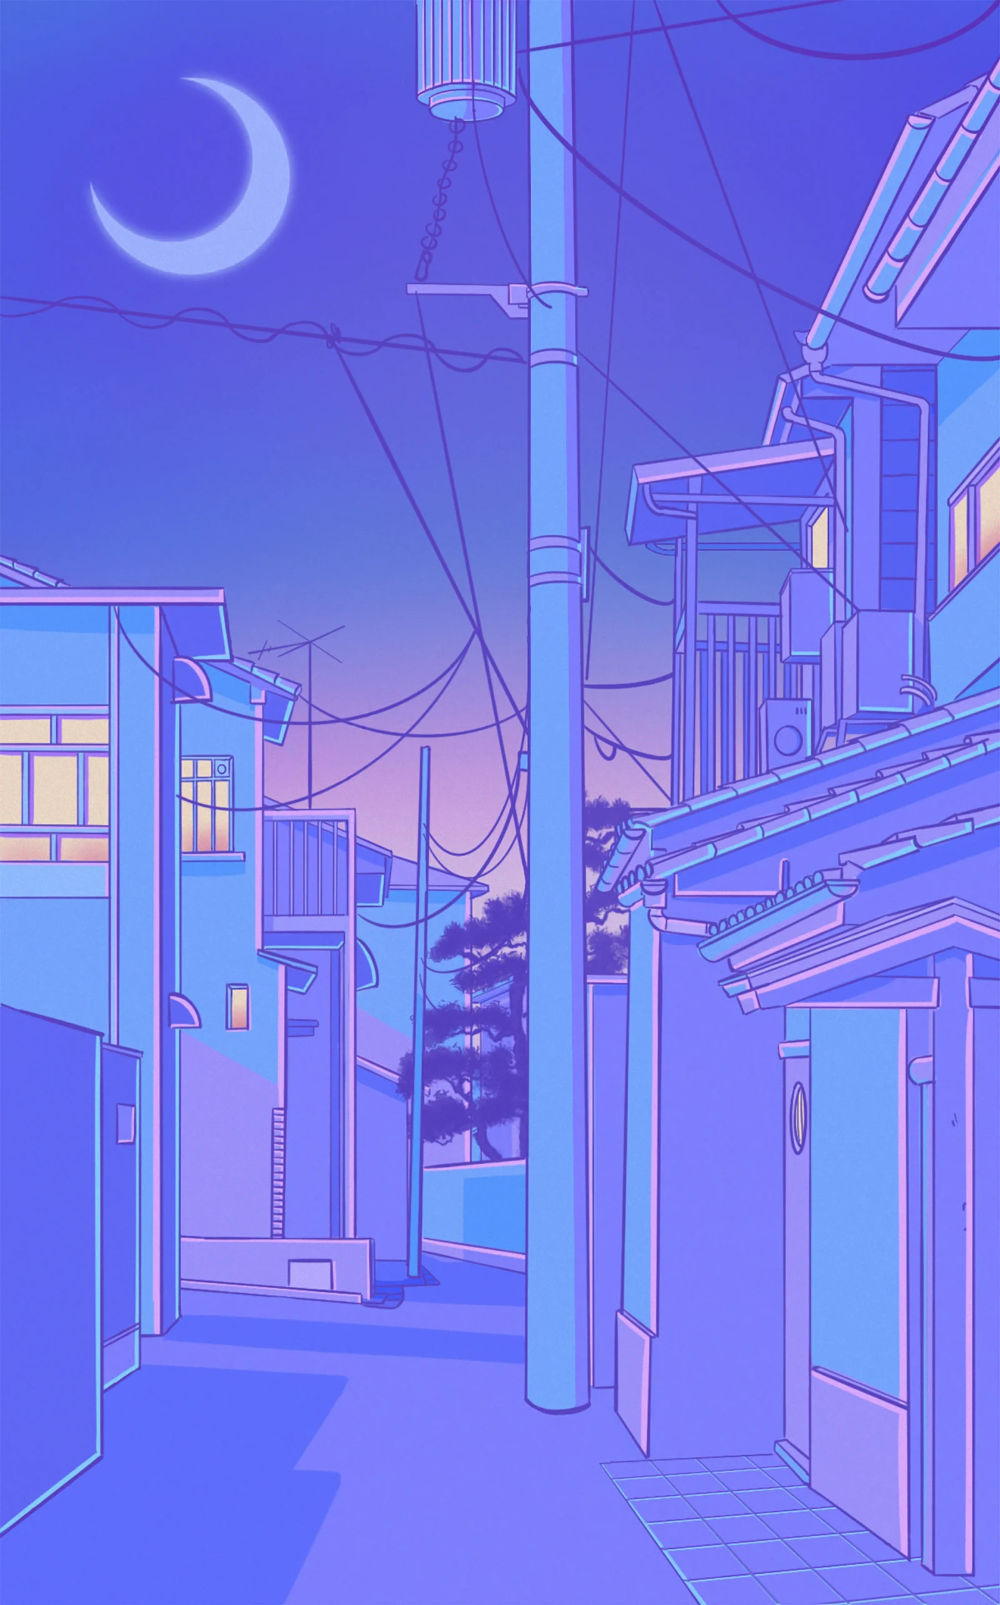 Tokyo Streetscapes In 2020 Blue Aesthetic Pastel Anime Scenery Wallpaper Aesthetic Pastel Wallpaper